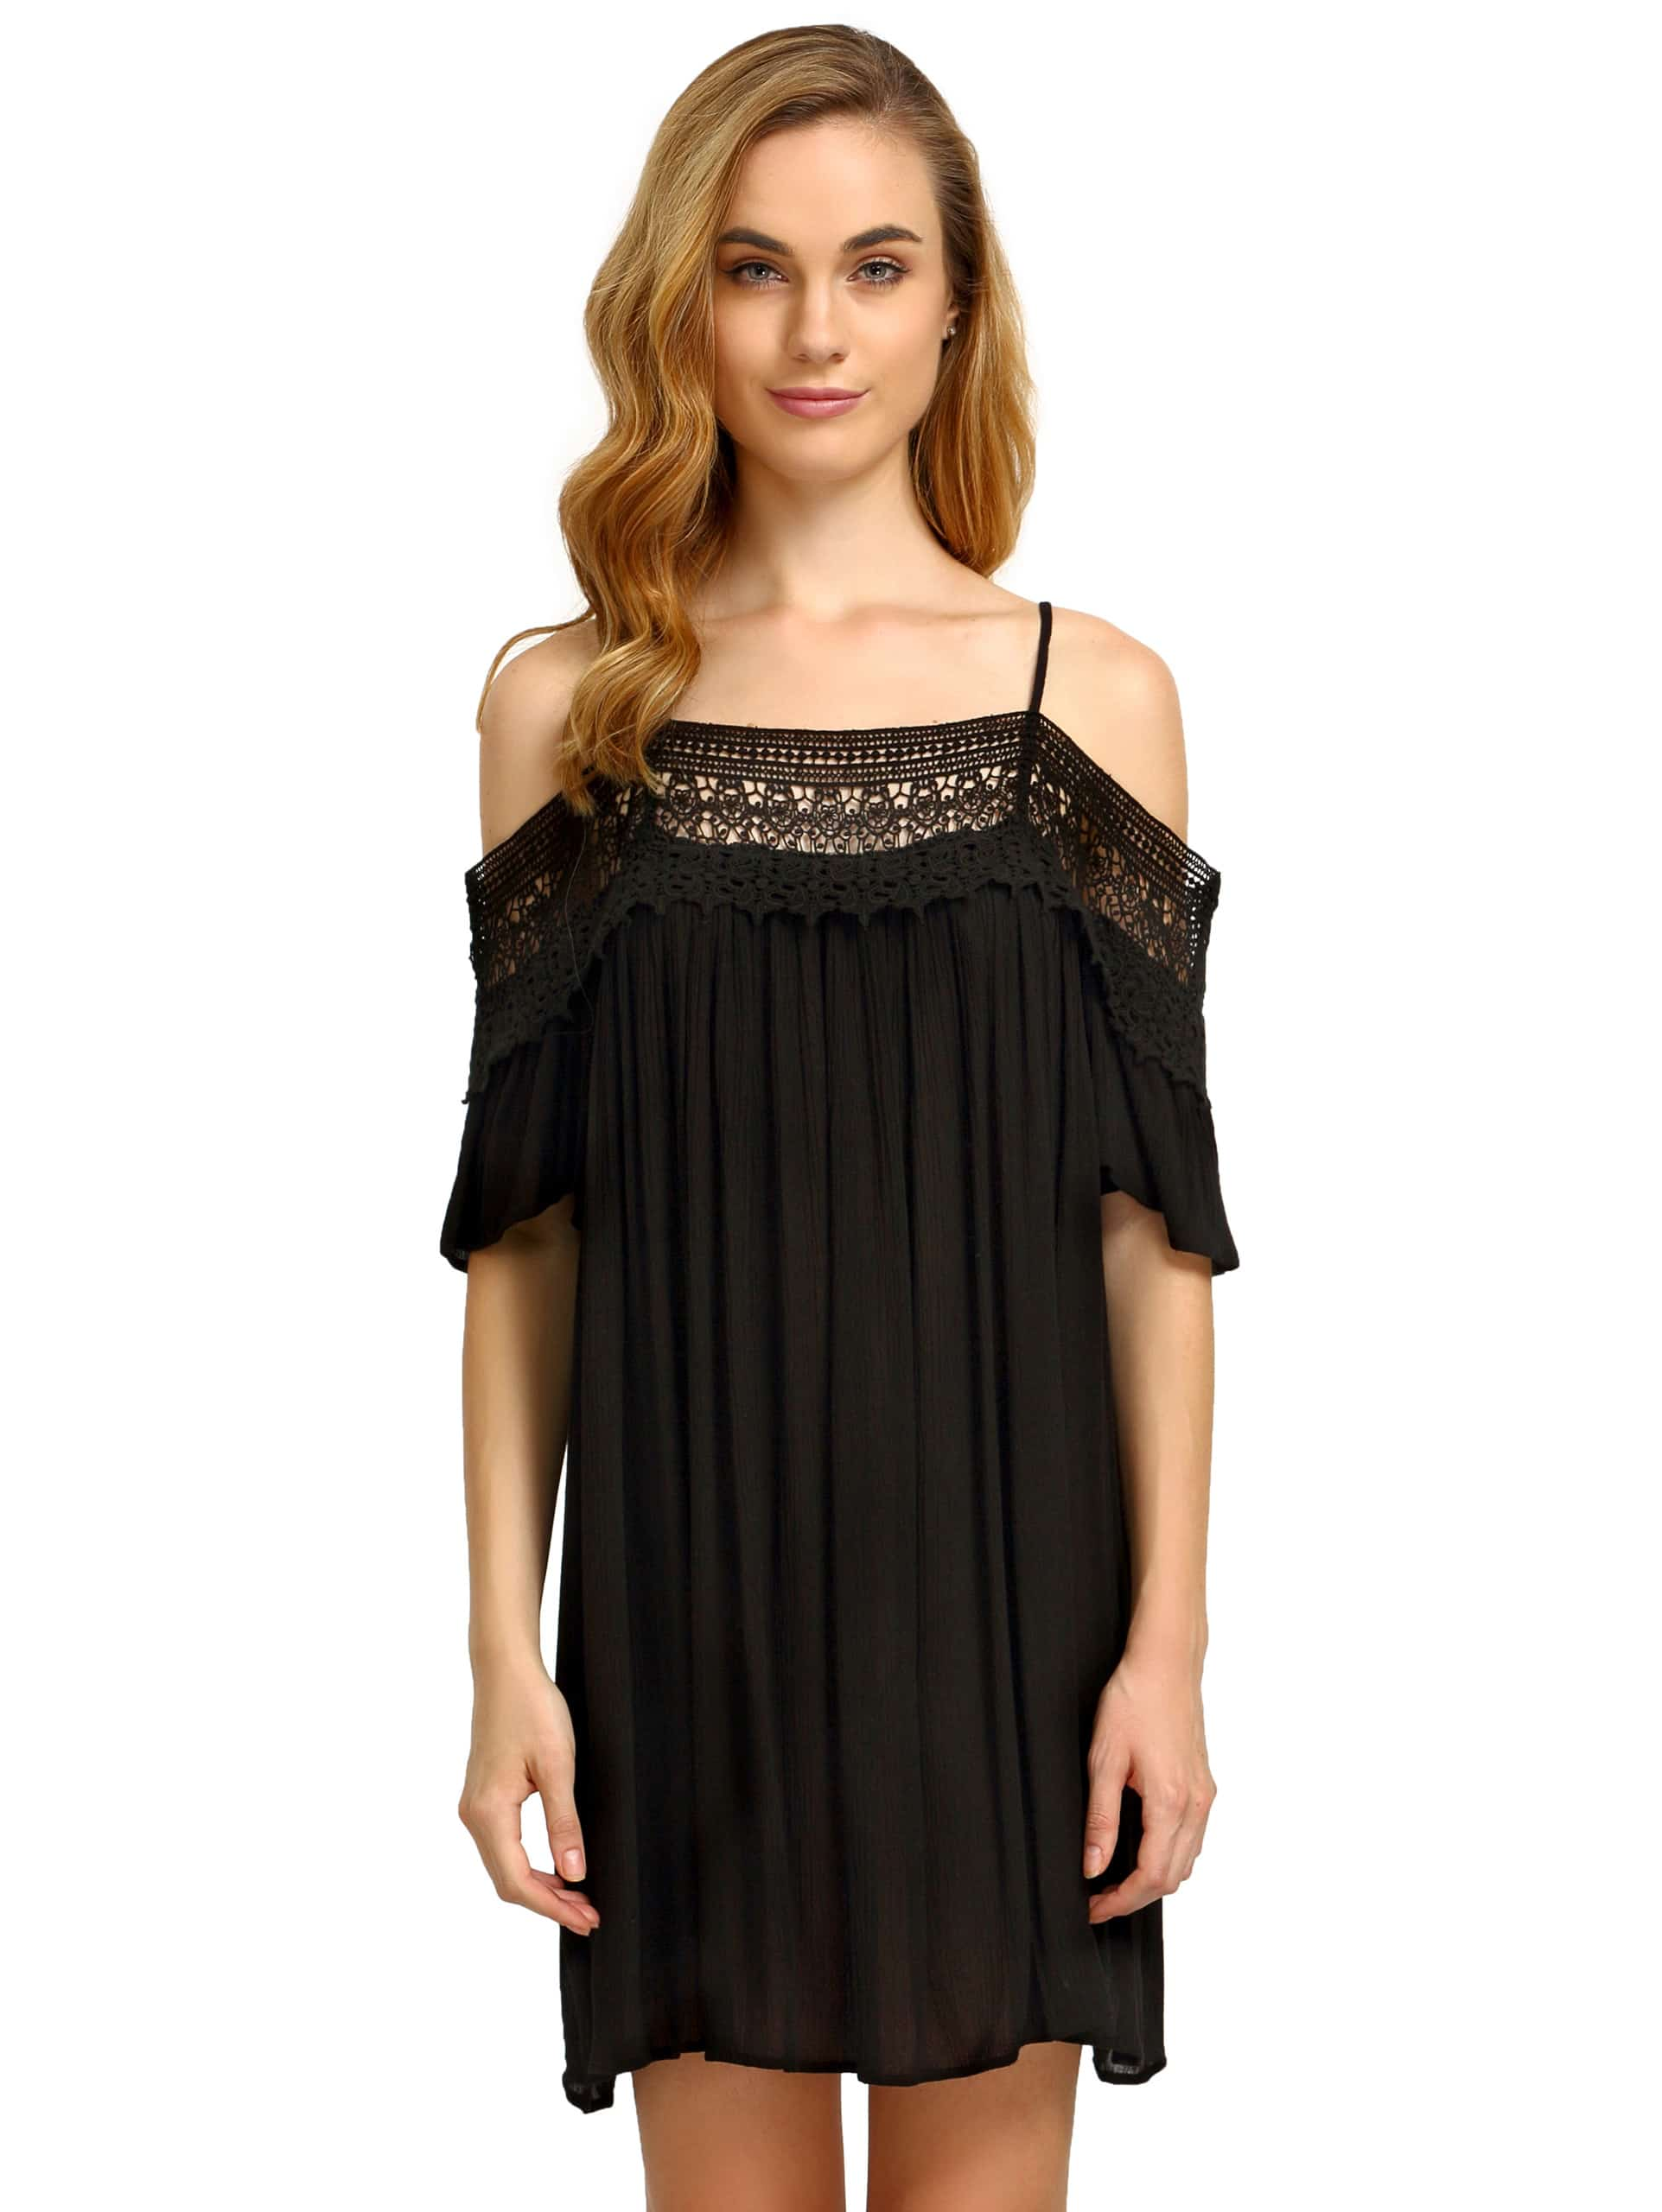 36912e740d05ee Black Spaghetti Strap Panelled Off The Shoulder With Lace Dress ...